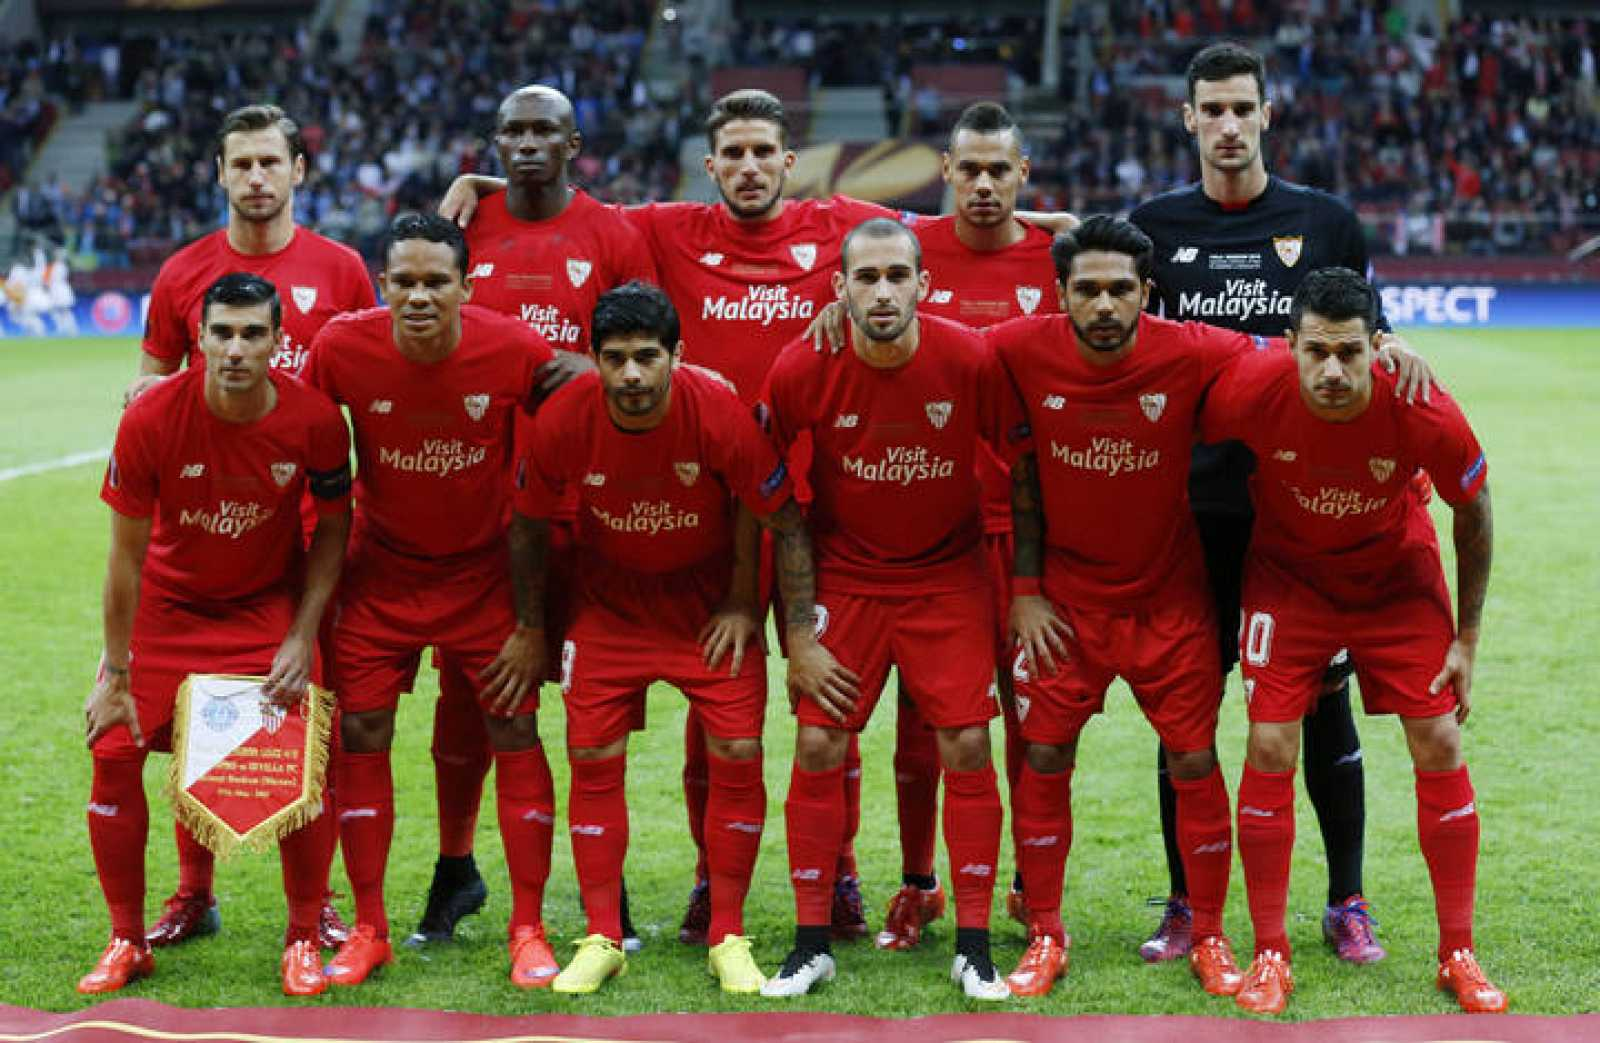 El Sevilla en la final de la Europa League 2015.